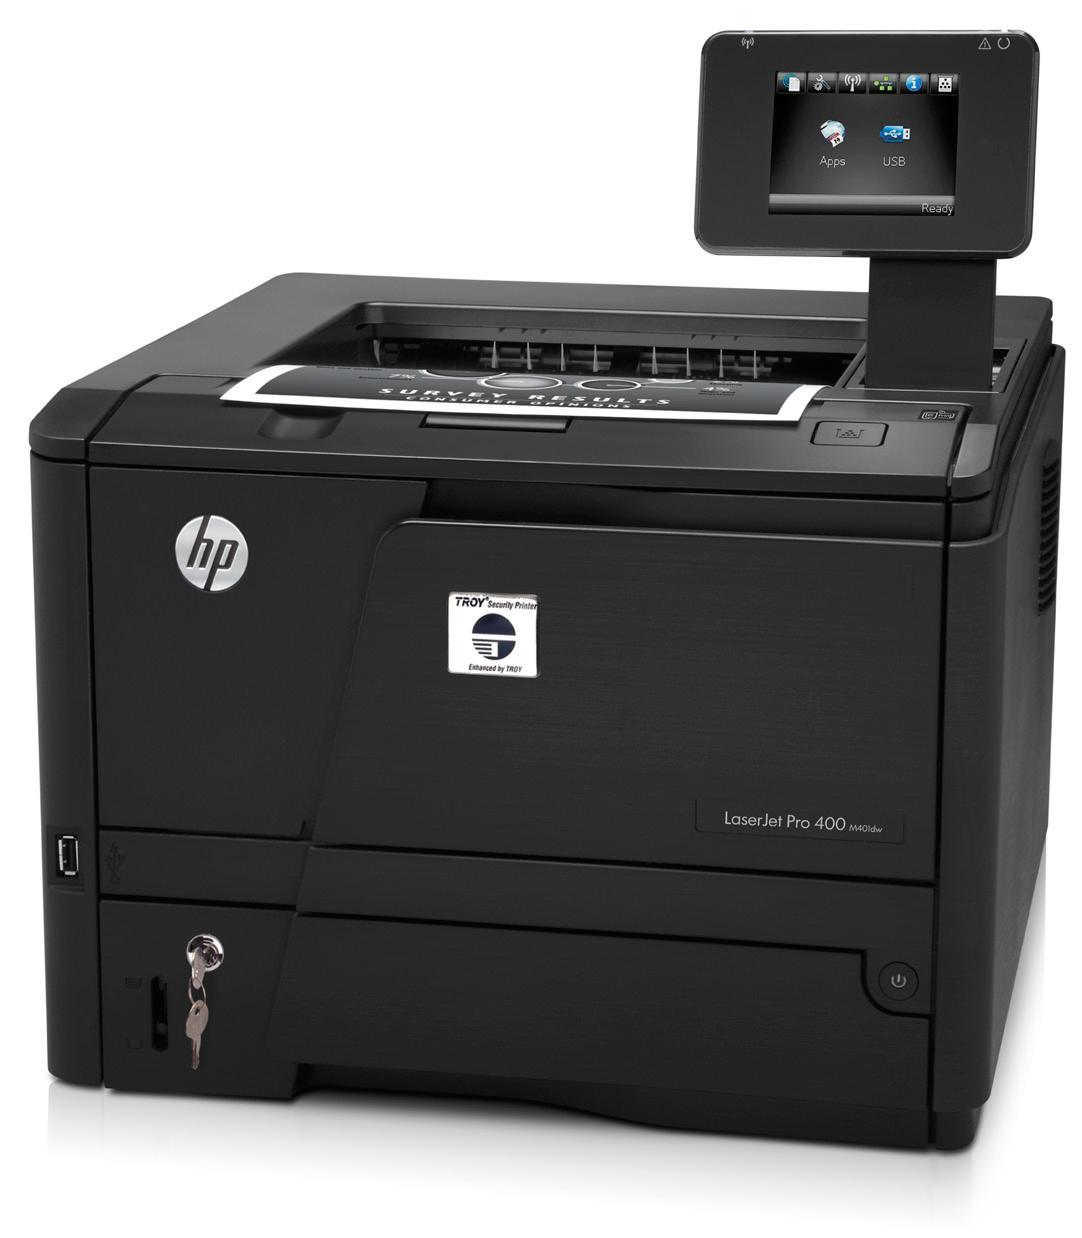 *DISCONTINUED* TROY MICR 401dn Printer